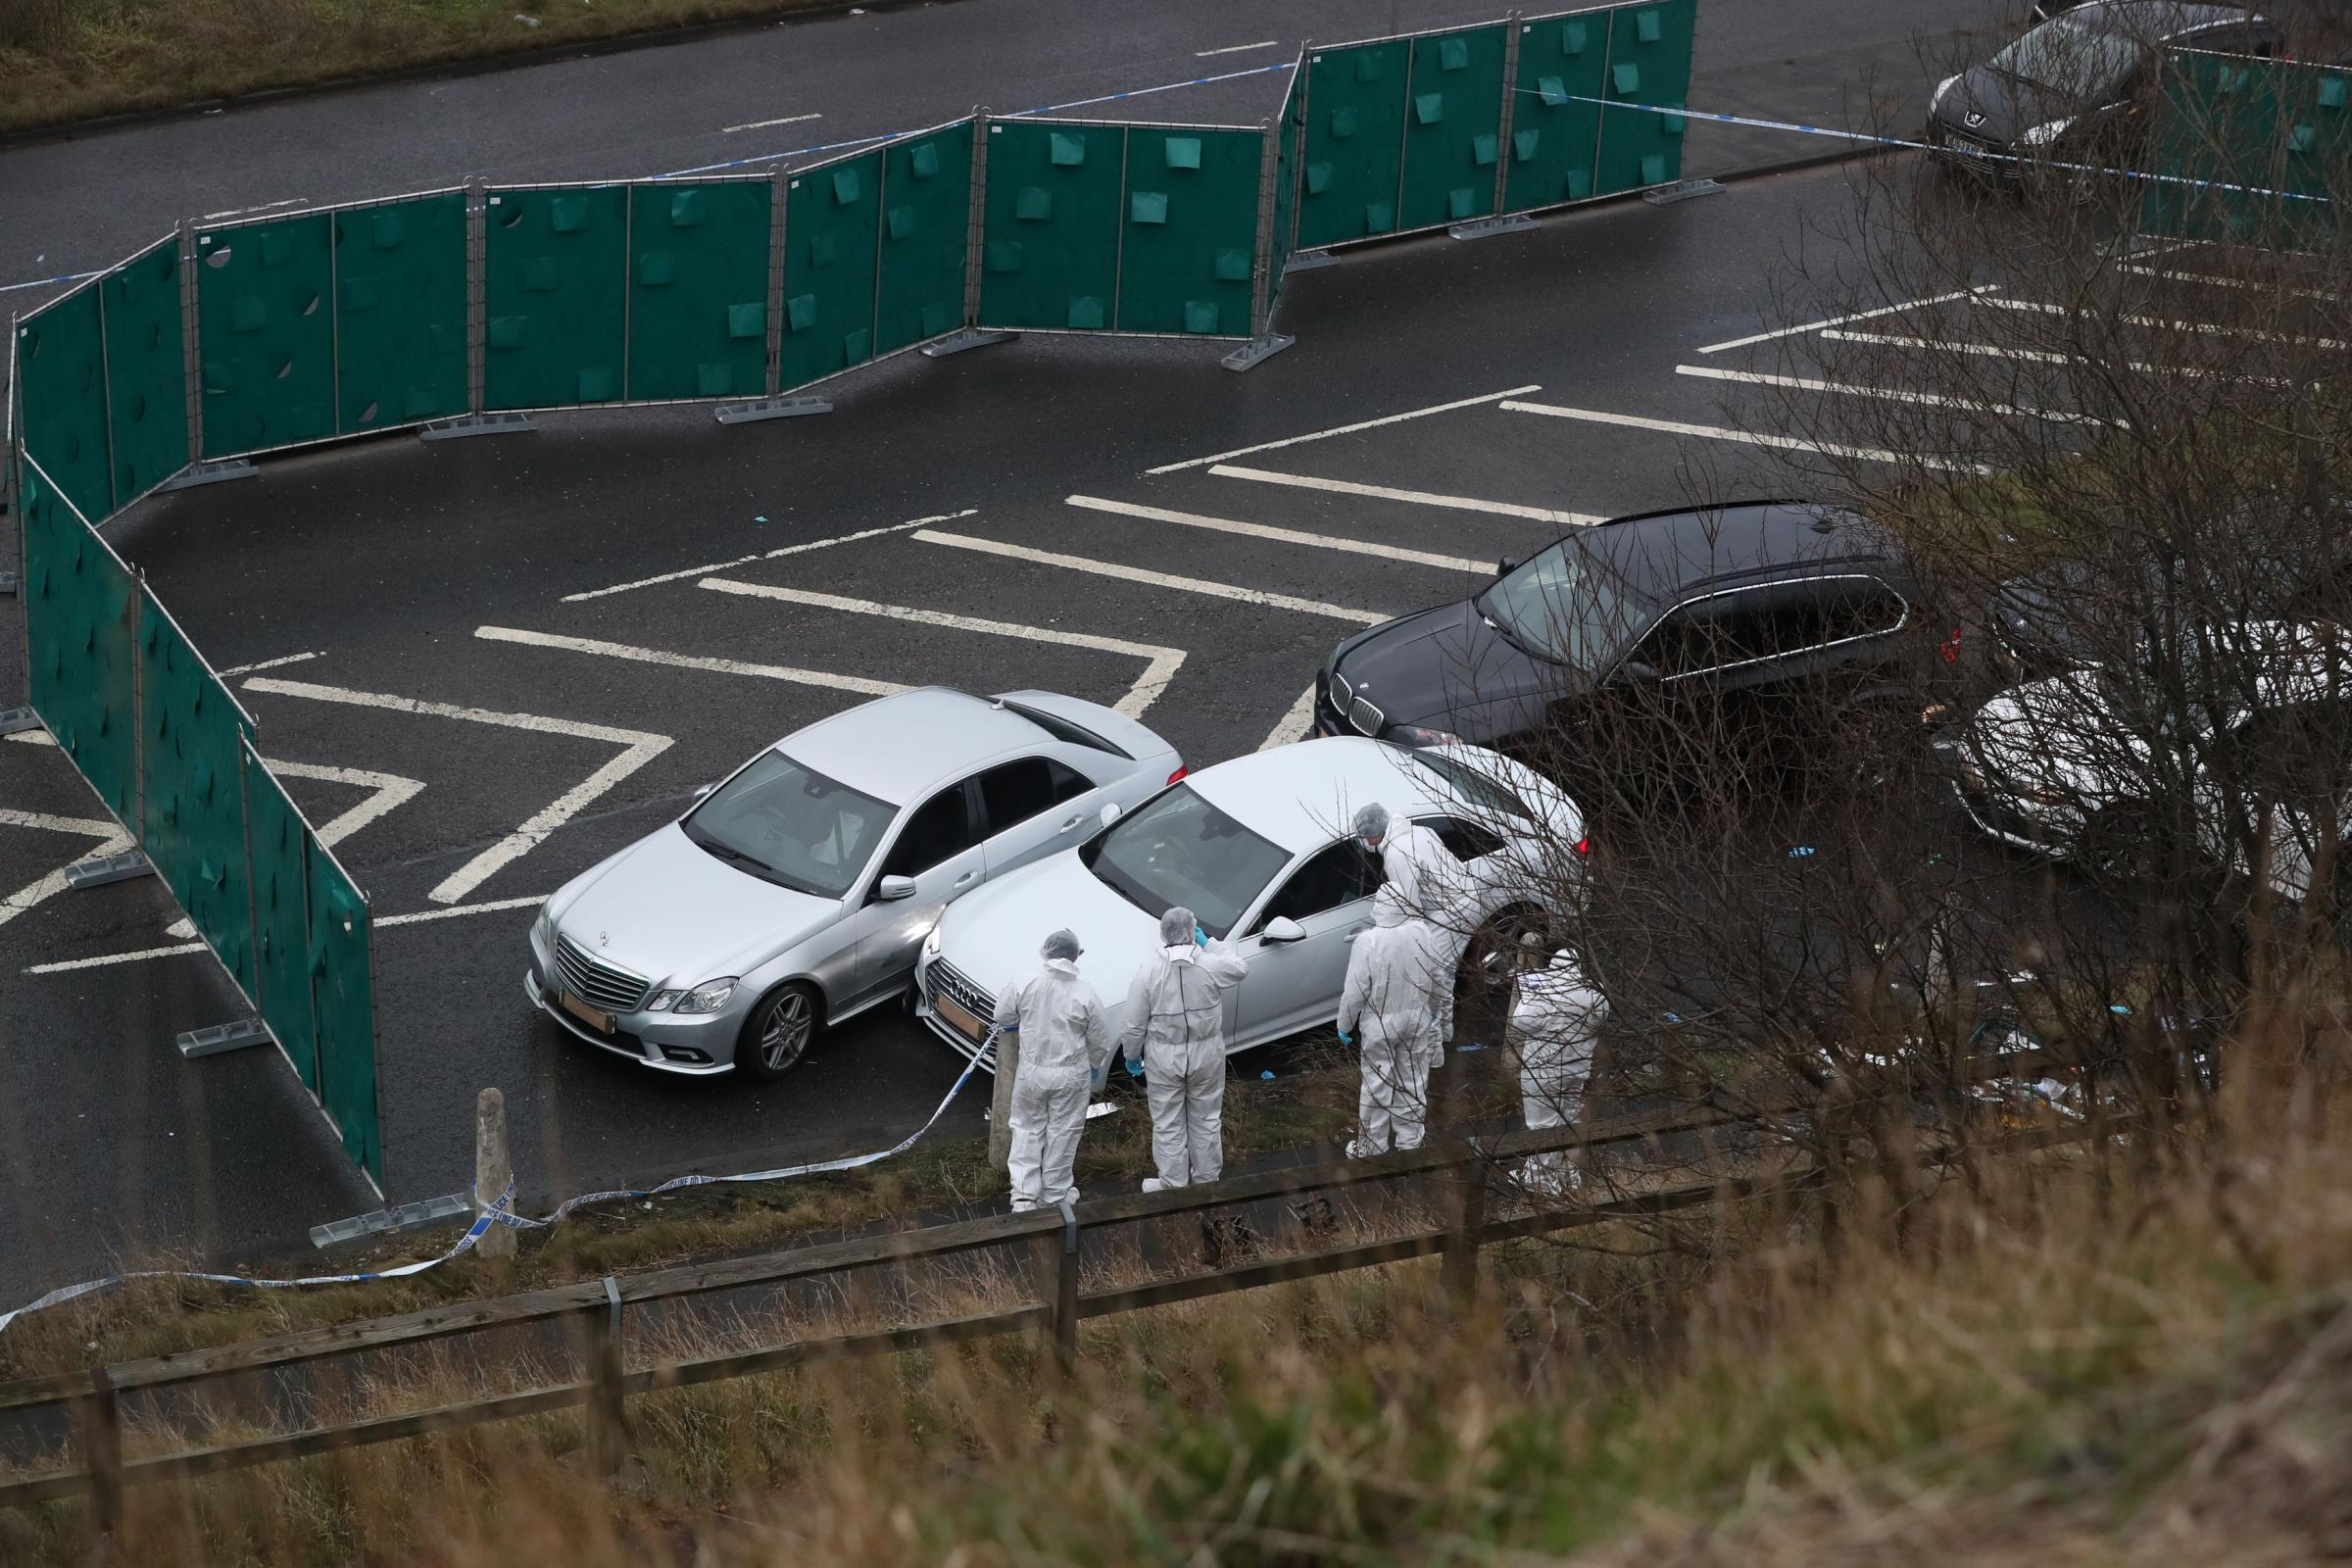 Police forensics officers examine a silver Audi with bullet holes in its windscreen near junction junction 24. Photo: Peter Byrne/PA Wire